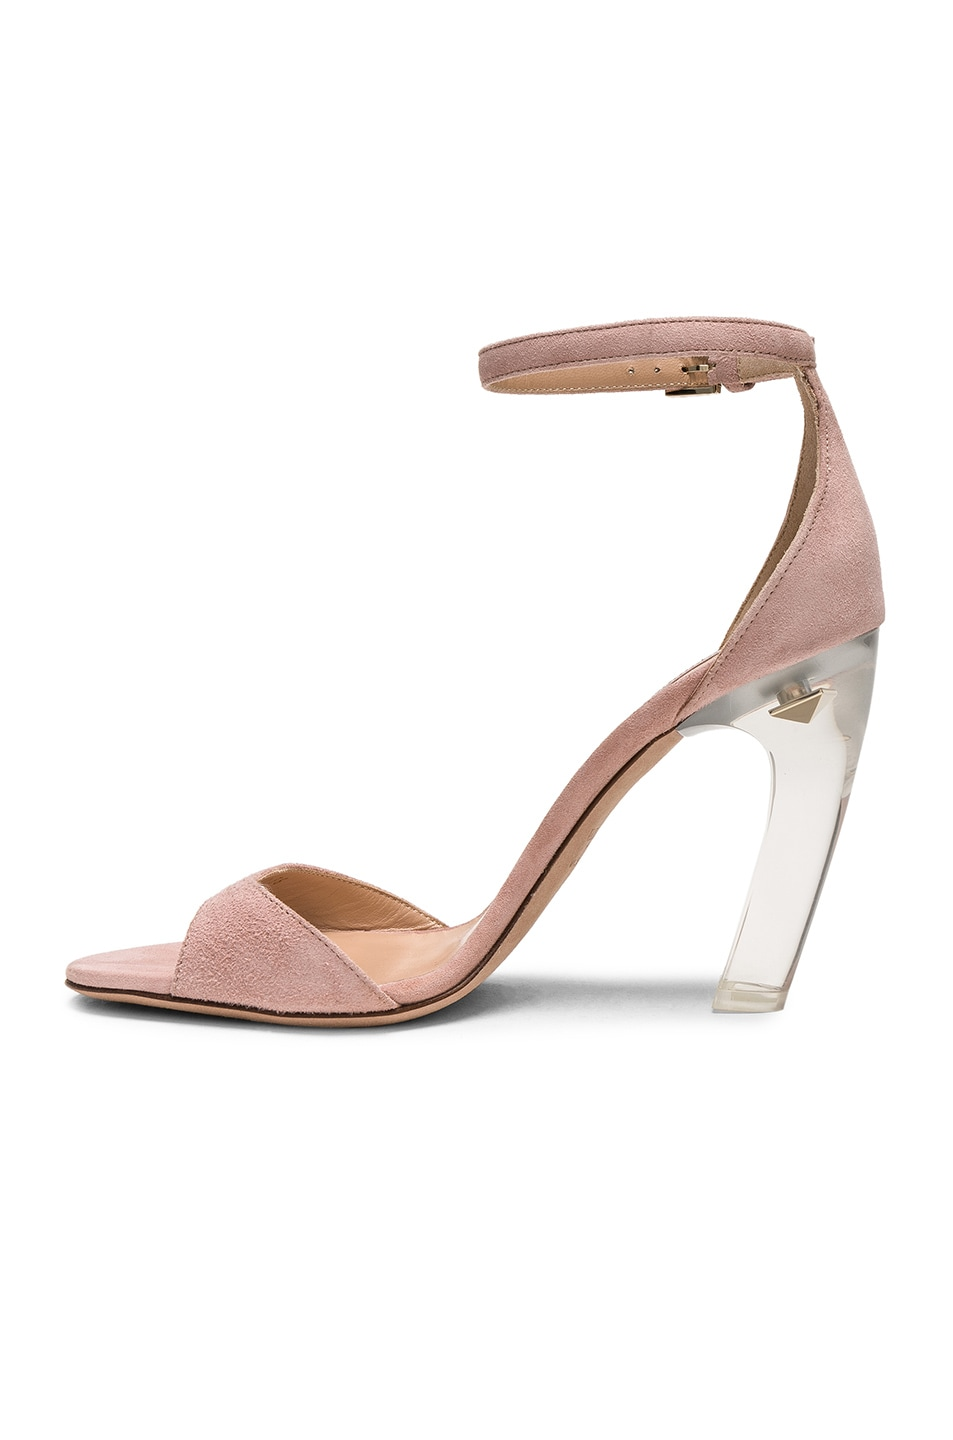 Image 5 of Valentino Twinkles Ankle Strap Sandals in Dusty Rose